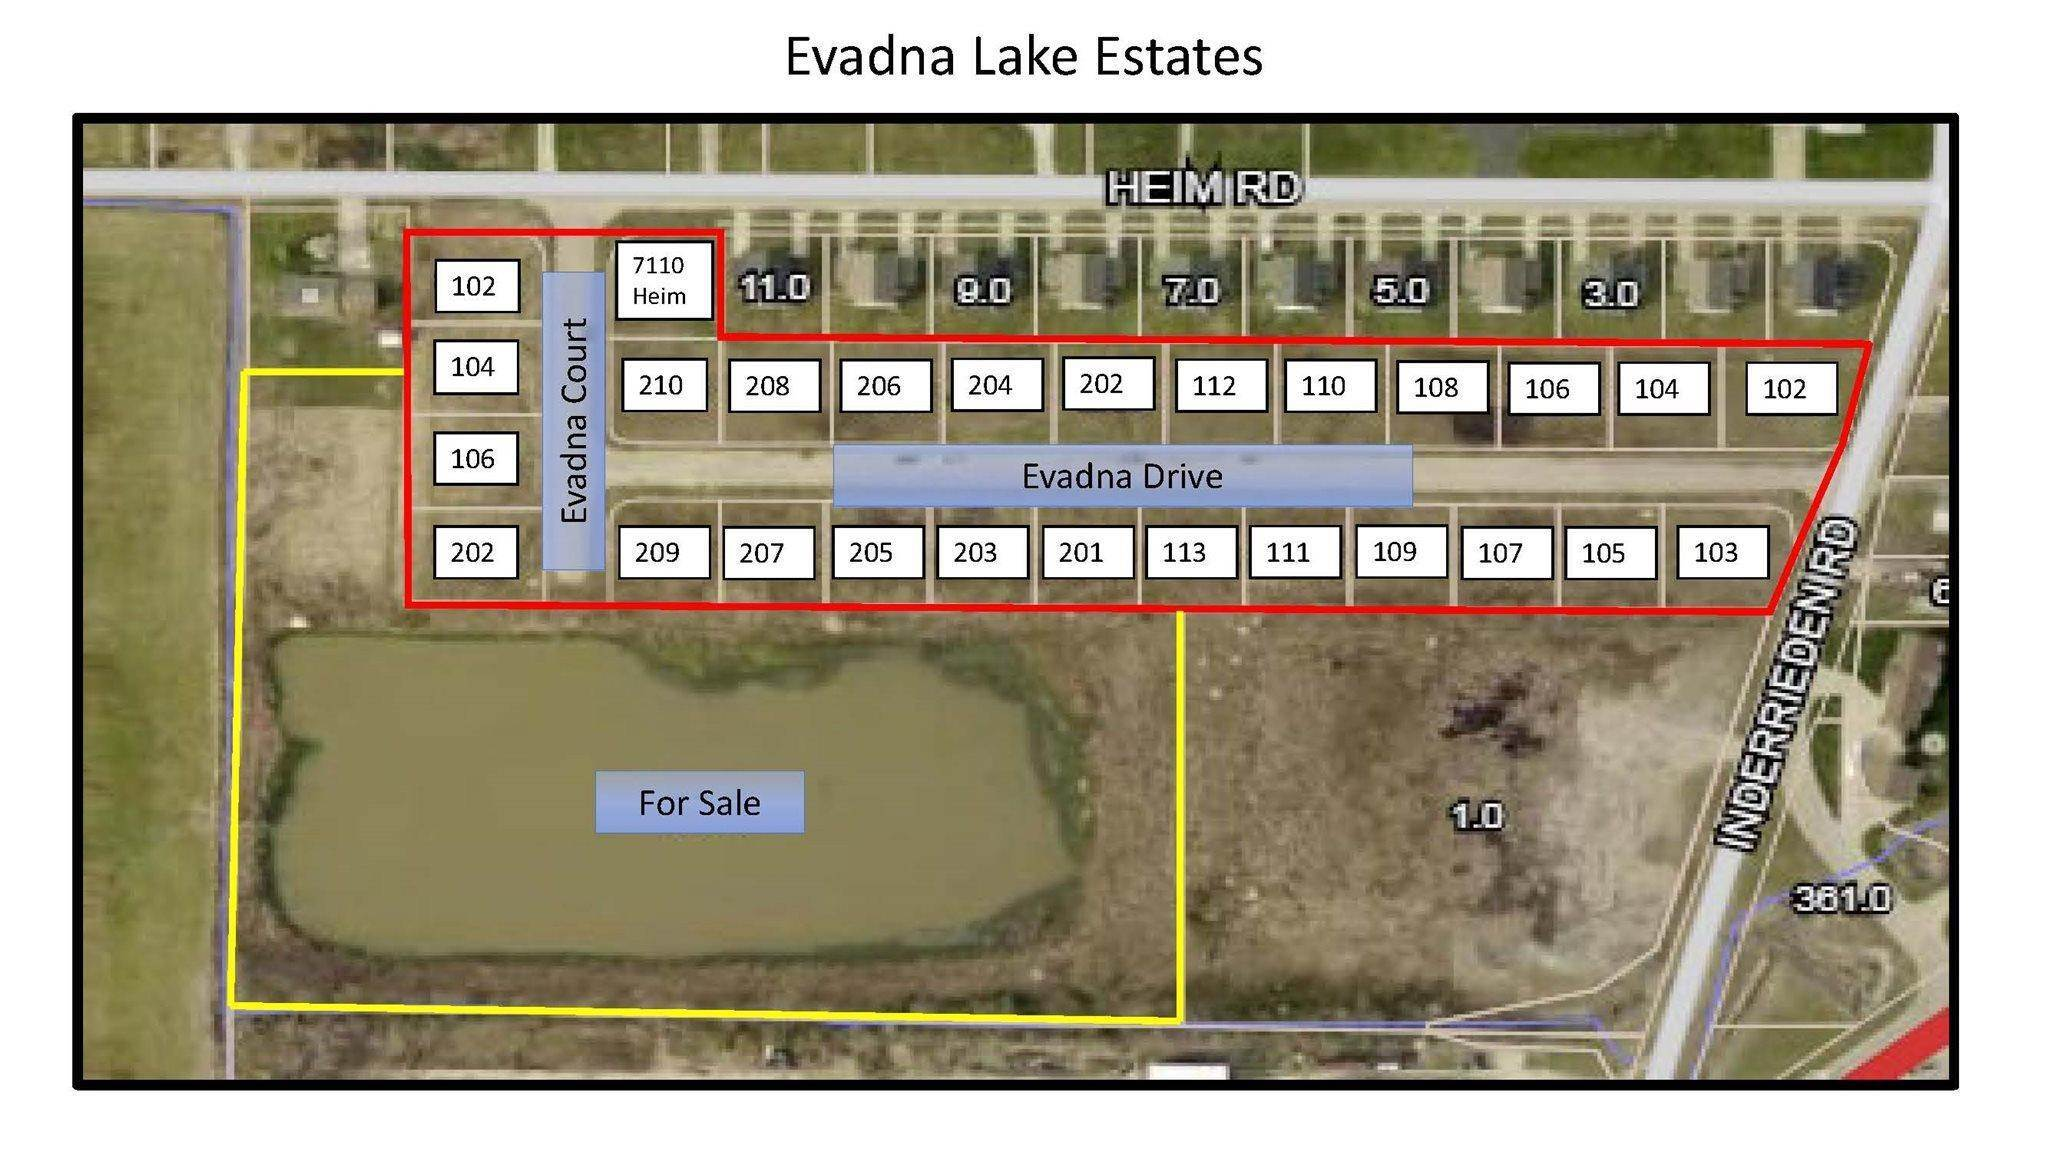 Residential Lots & Land for Sale at 209 Evadna Drive Boonville, Indiana 47610 United States